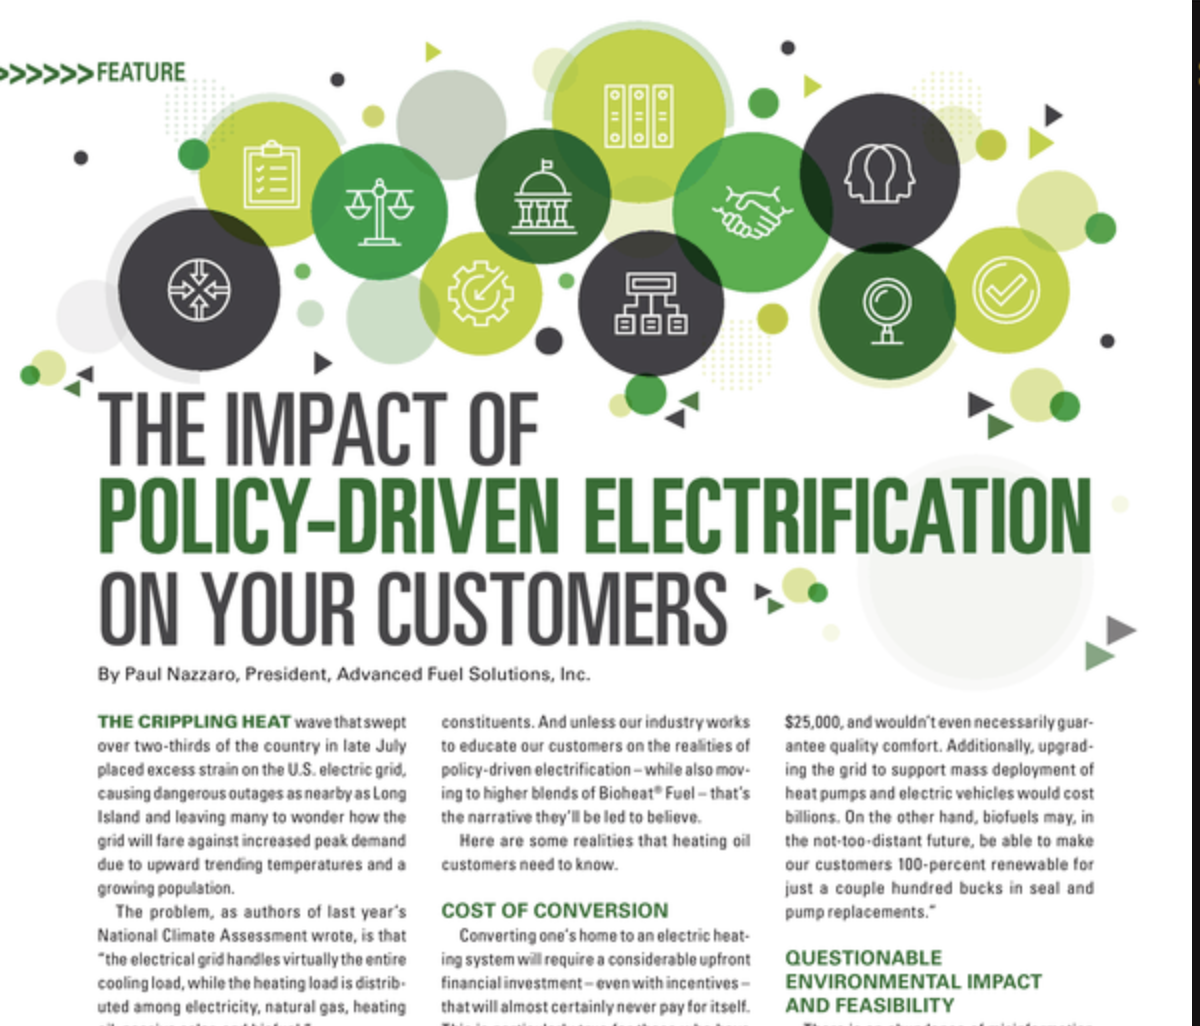 Impact of Policy-Driven Electrification